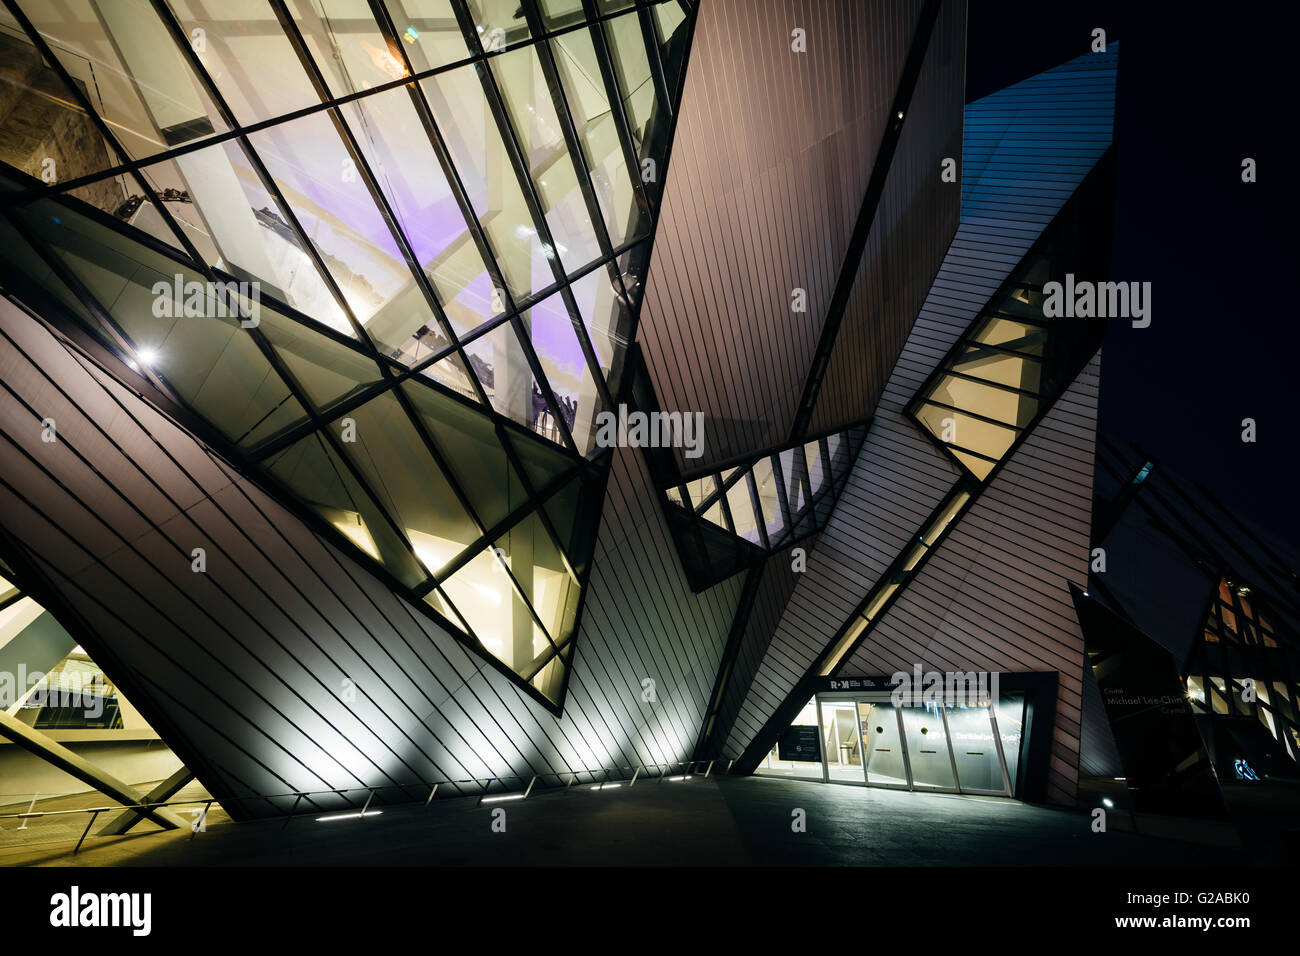 The exterior of the Royal Ontario Museum at night, in the Discovery District, Toronto, Ontario. - Stock Image